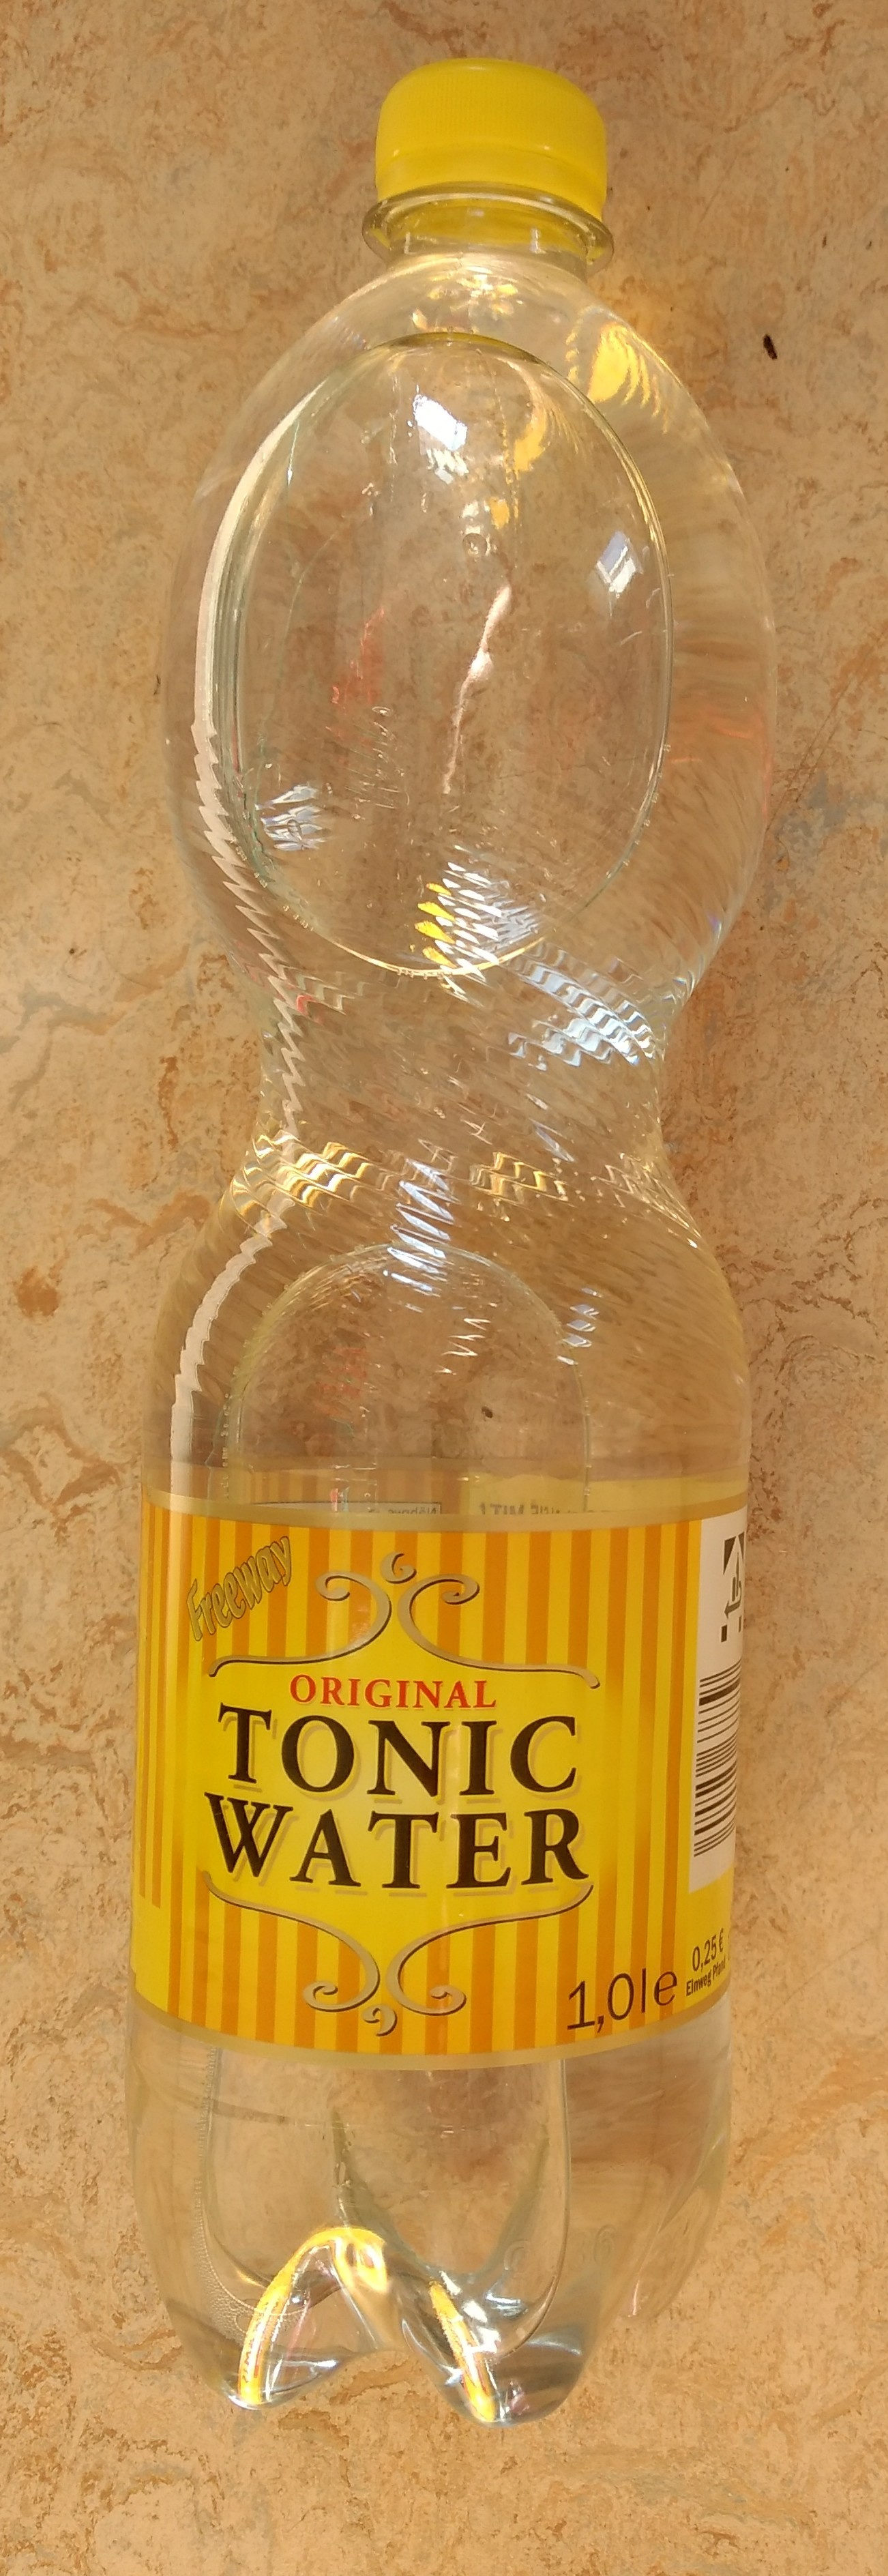 Original Tonic Water - Product